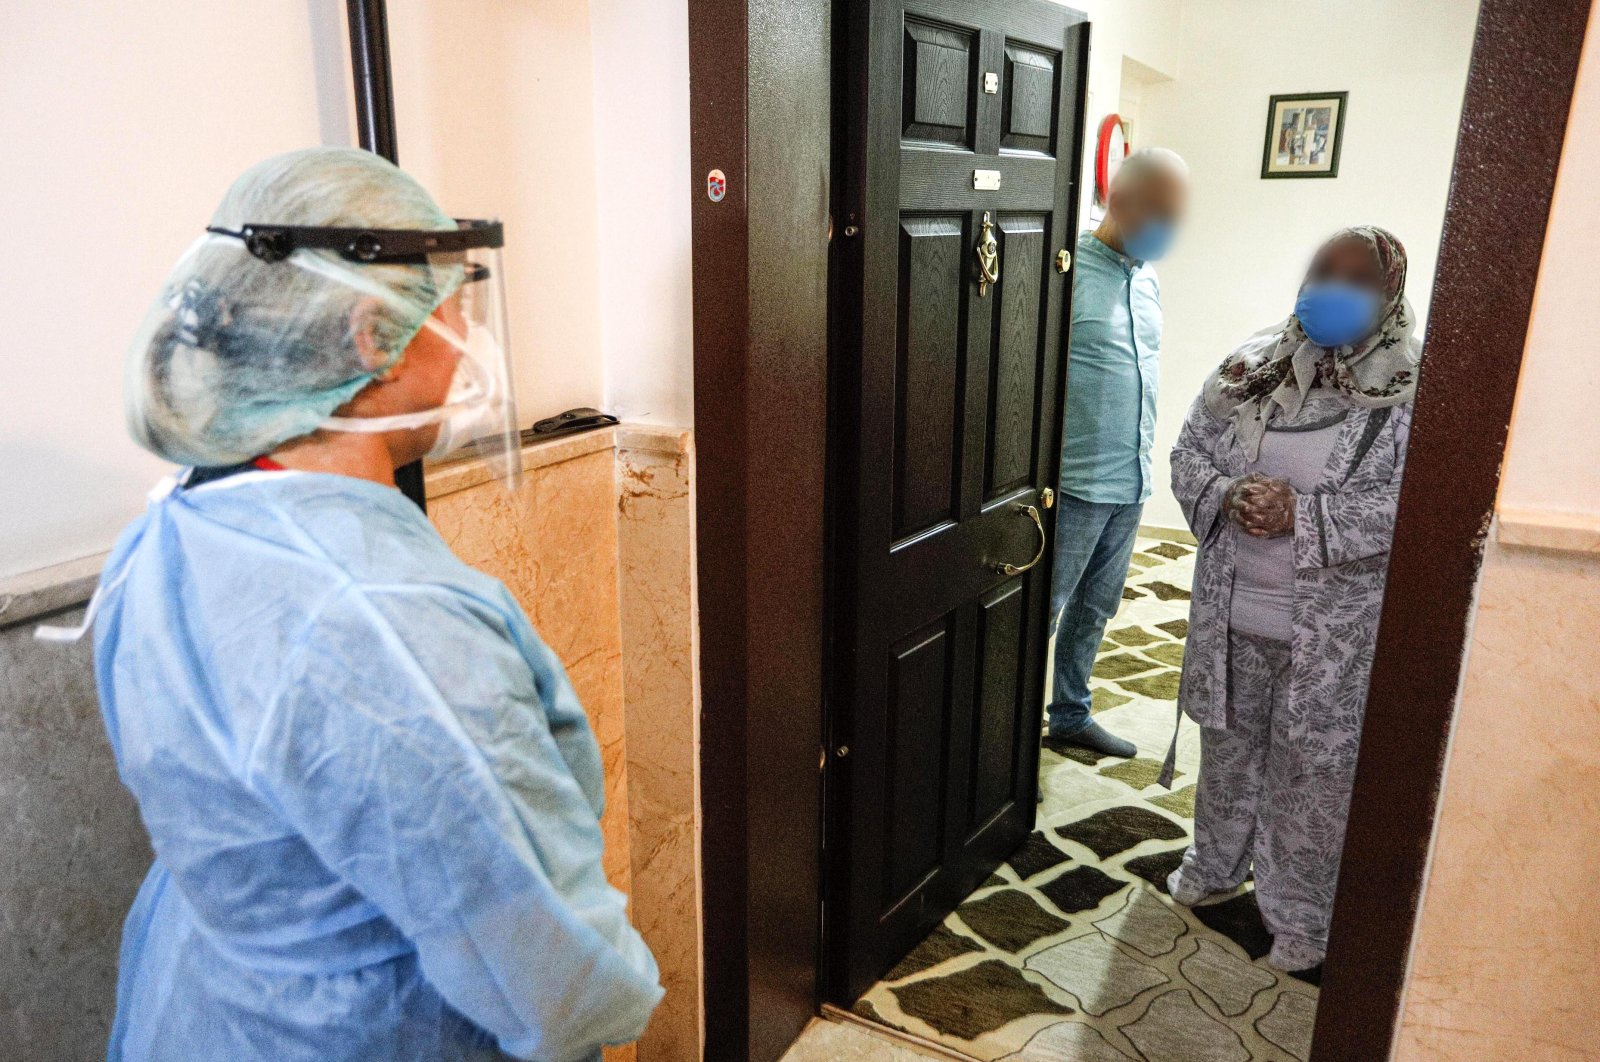 A contact tracer visits a family in the capital Ankara, Turkey, Oct. 15, 2020. (DHA Photo)